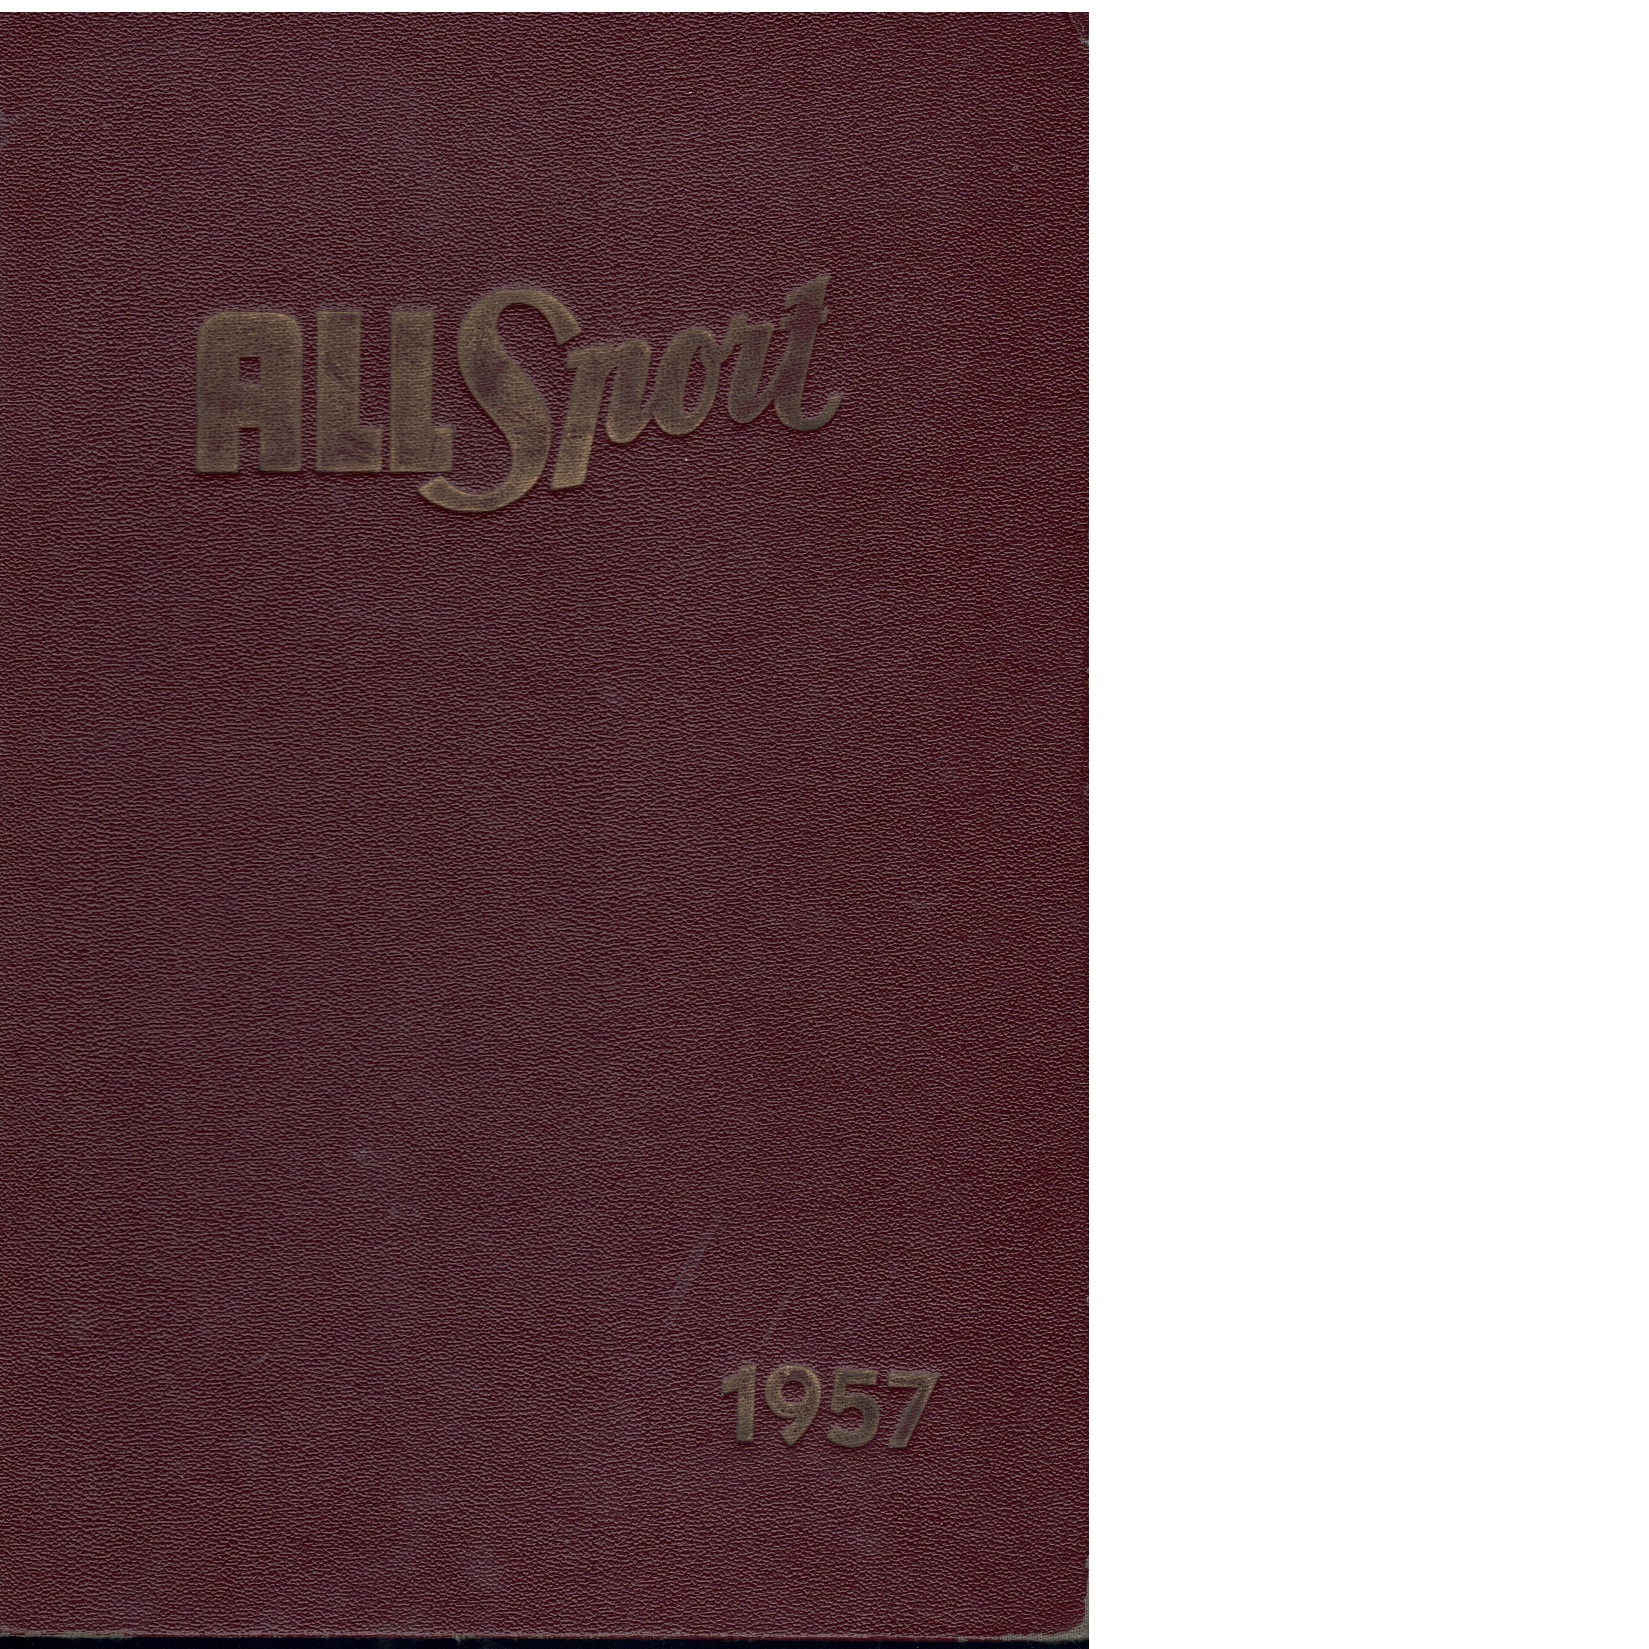 All sport 1957 1-12 - Red.